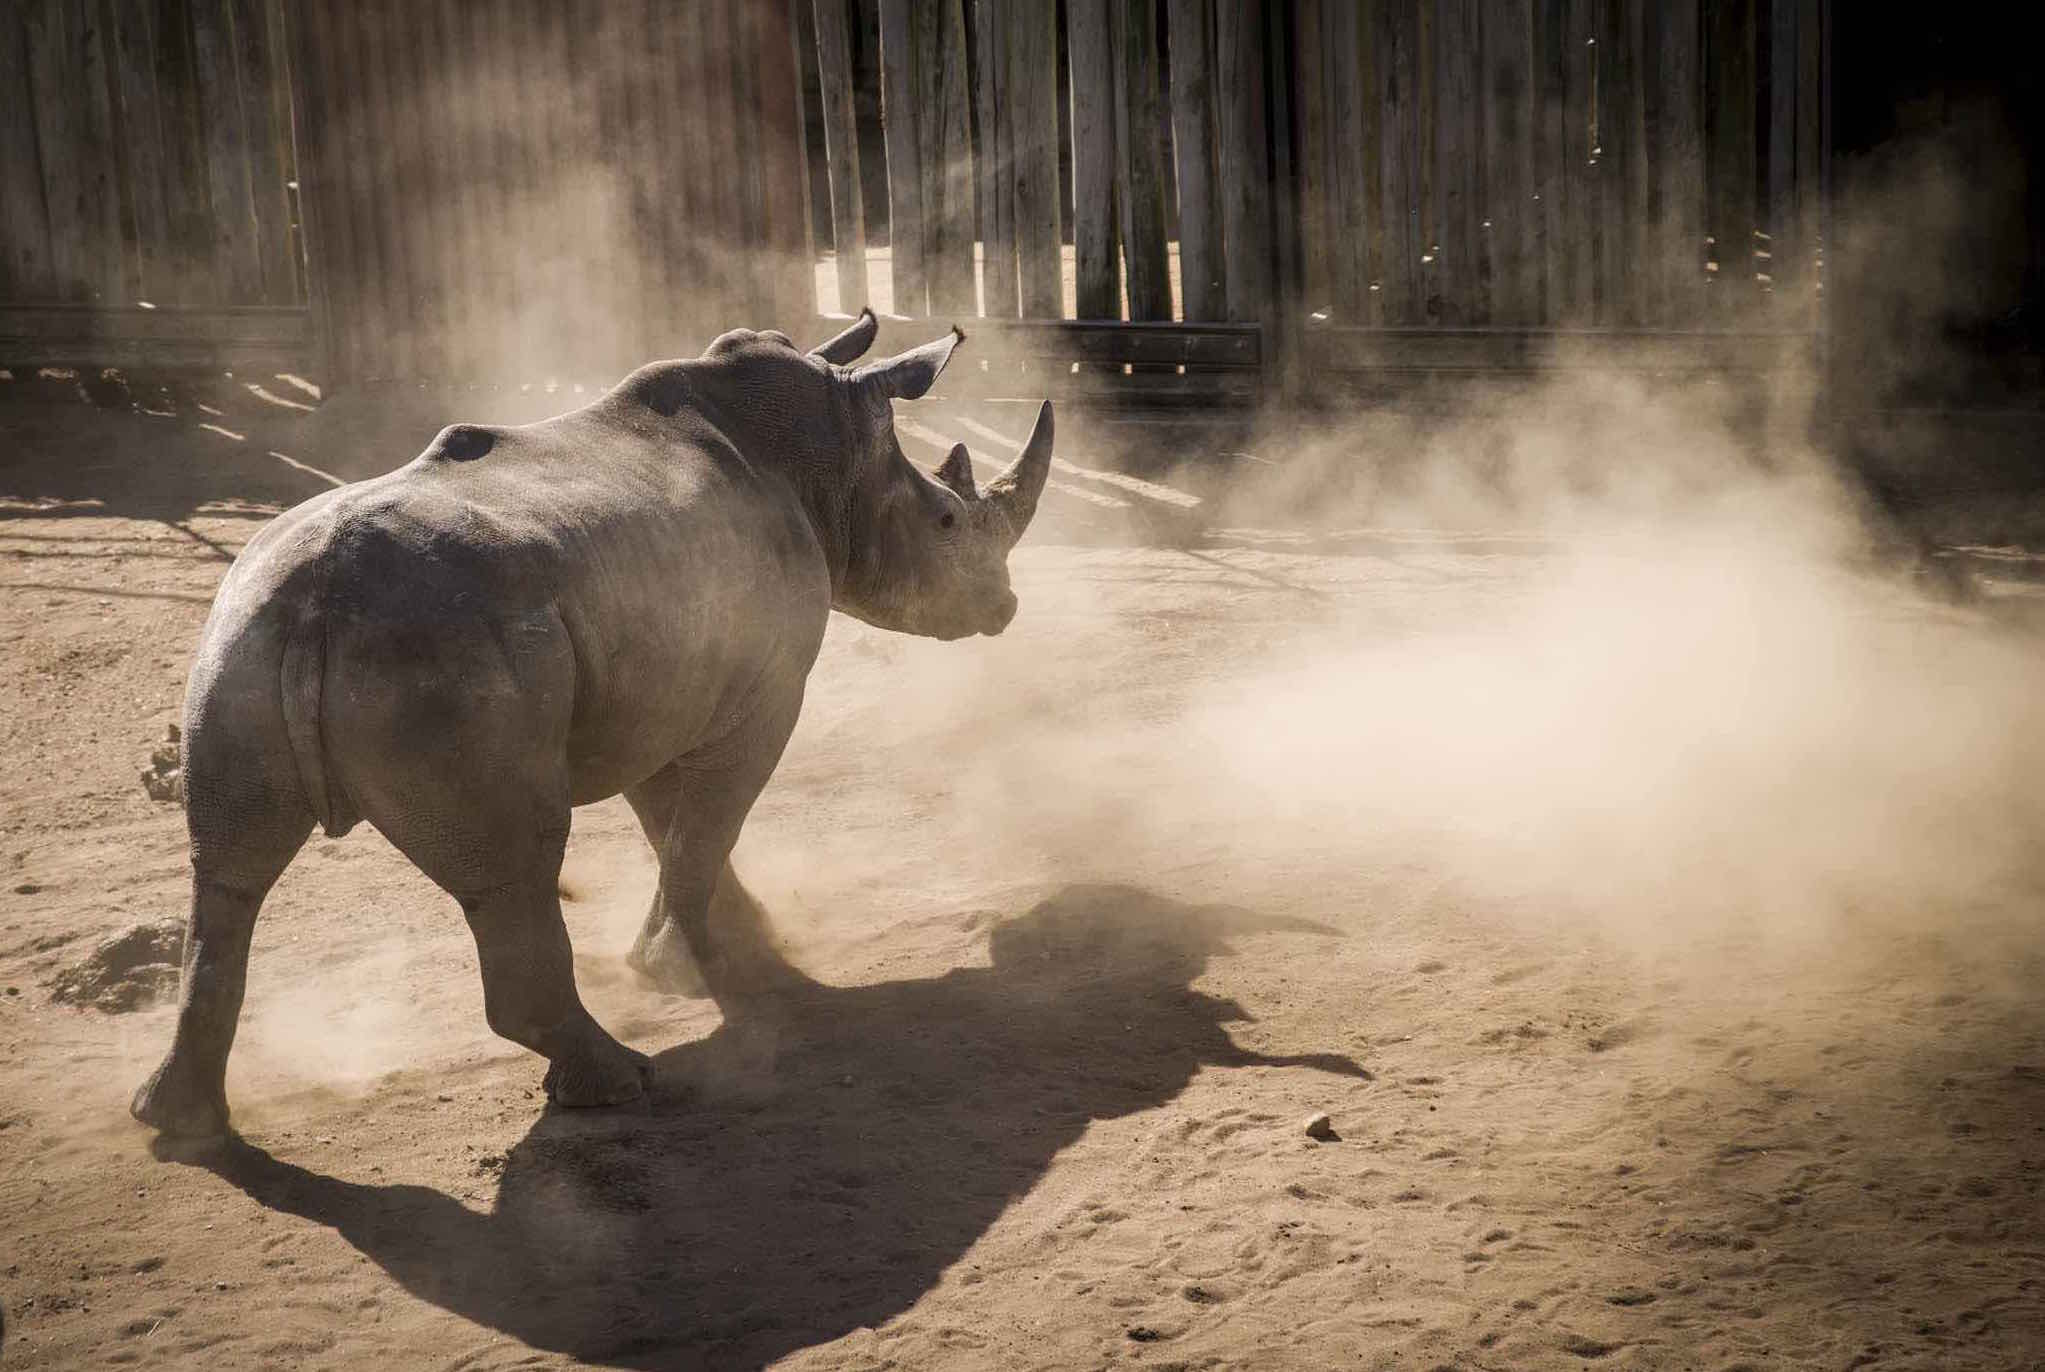 While it is legal for white rhinos to be hunted in South Africa under strict permit conditions, the hunt on the eve of CITES deliberations and its links to an ethically challenged outfit angered wildlife groups at the talks. Photo: Jacques Marais